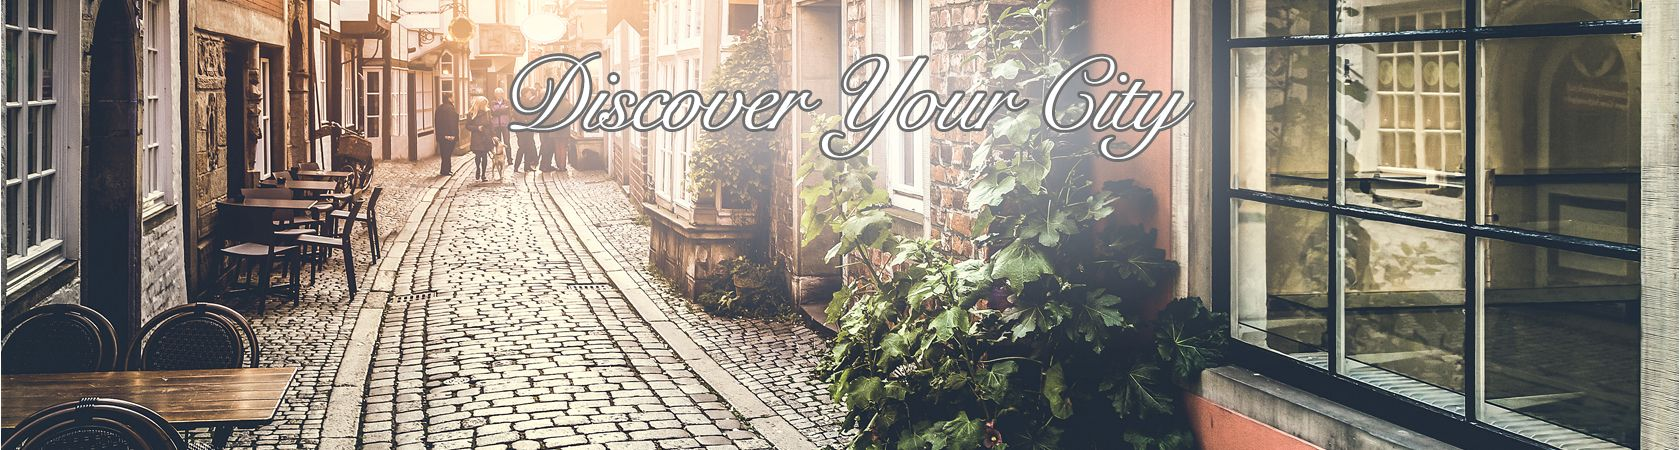 It's Time For You To Discover Your City!